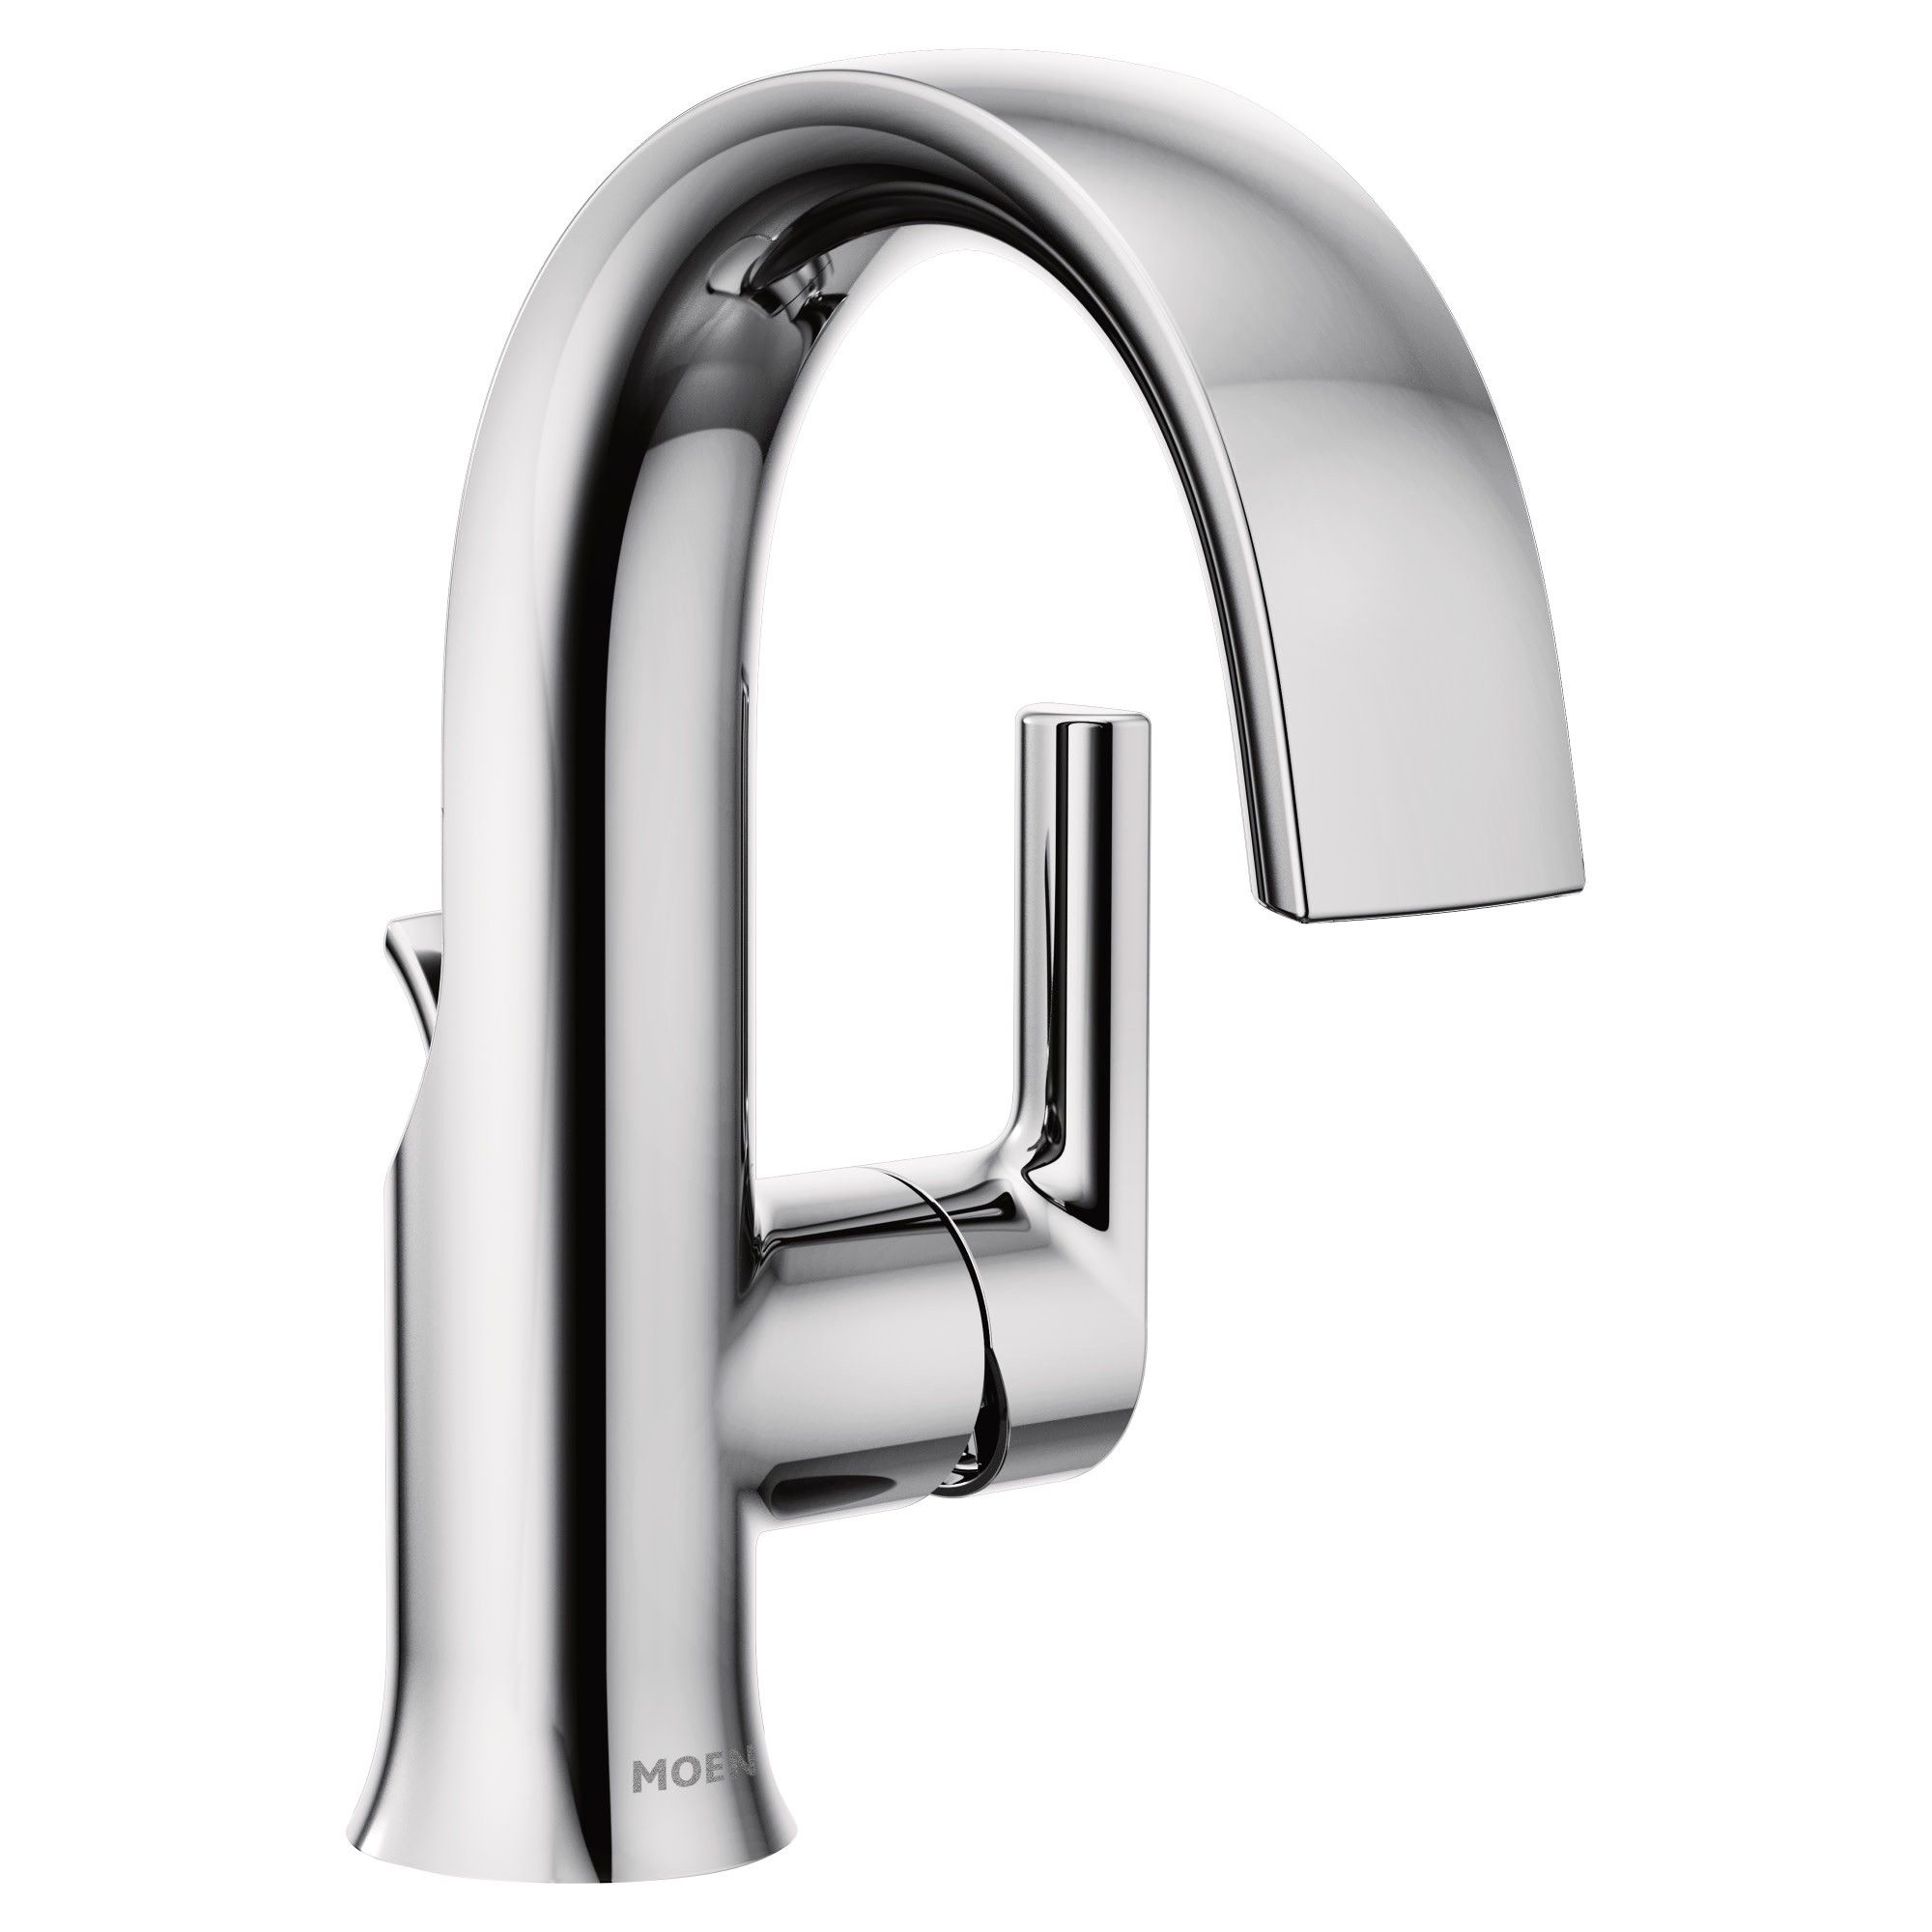 Moen S6910 Doux 1 2 Gpm Single Hole Bathroom Faucet With Pop Up